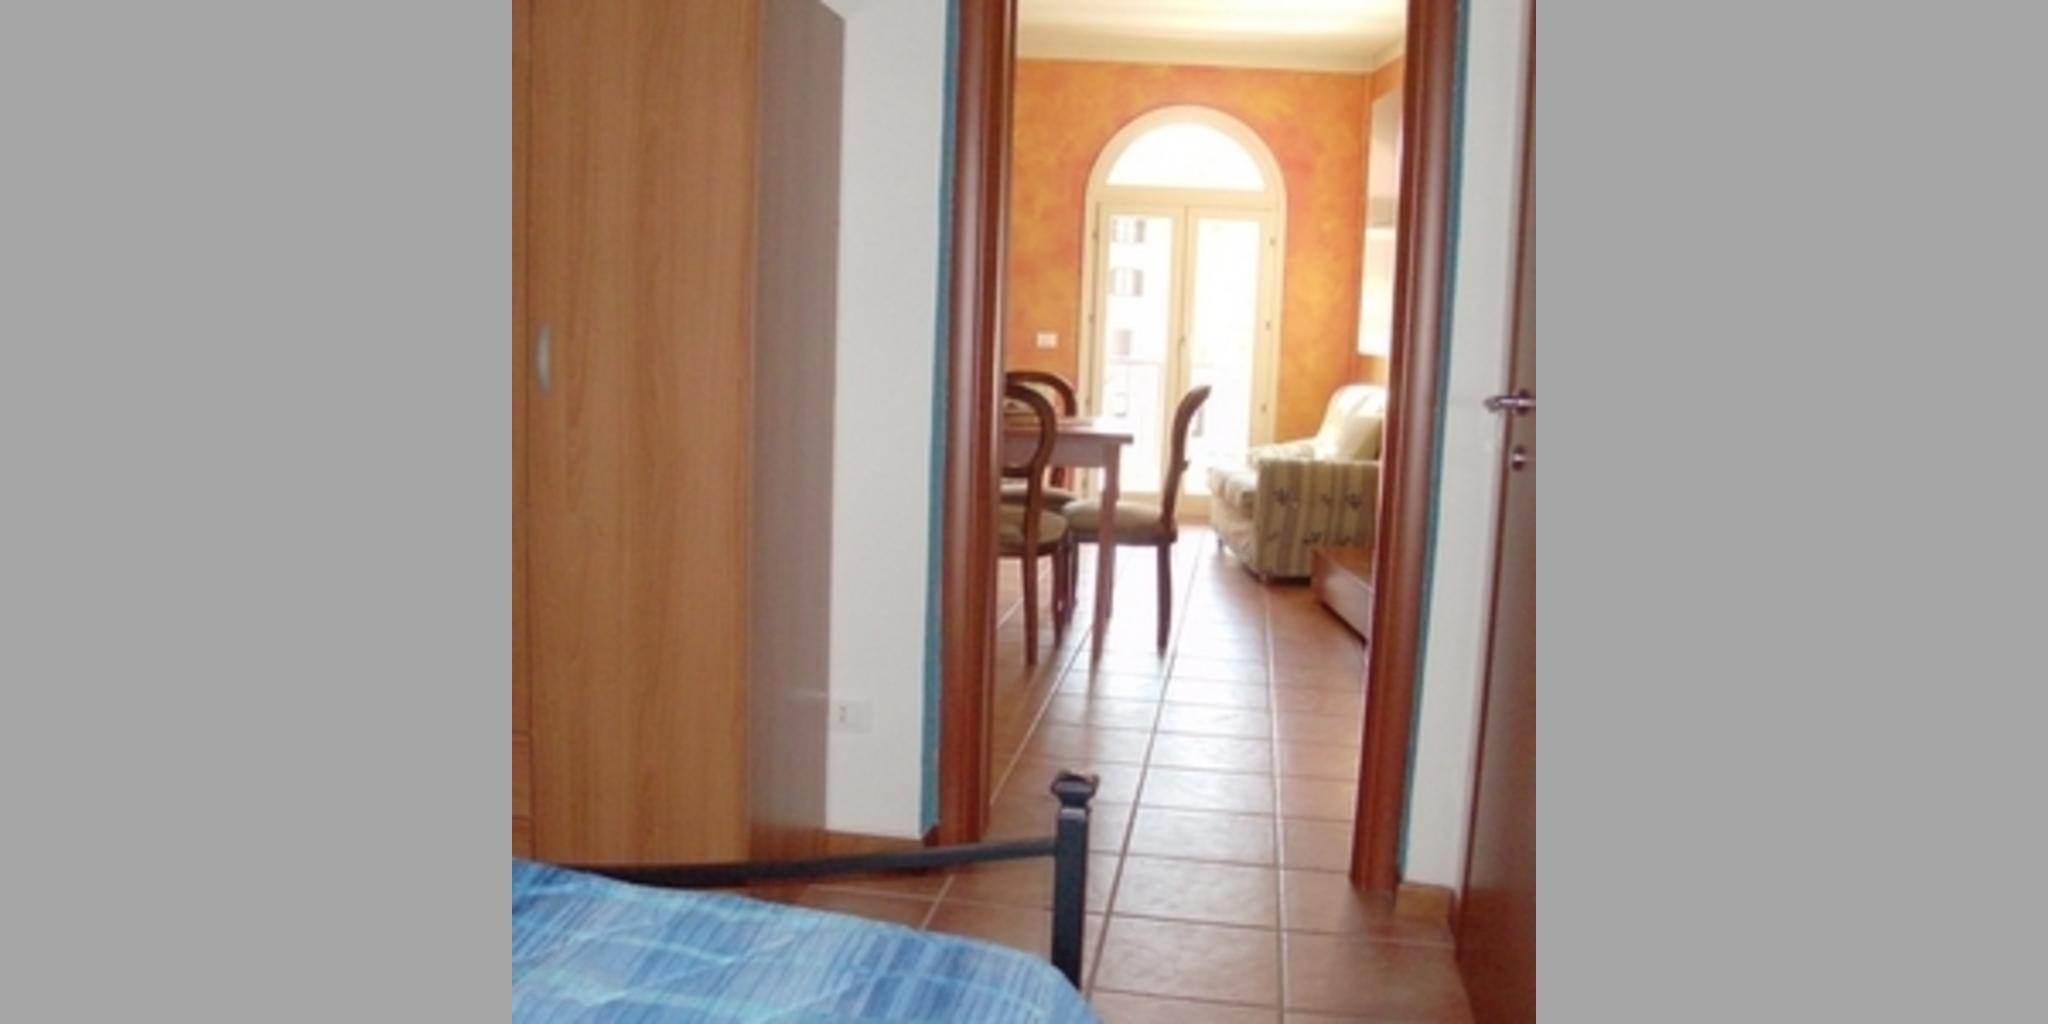 Bed & Breakfast Darfo Boario Terme - Boario